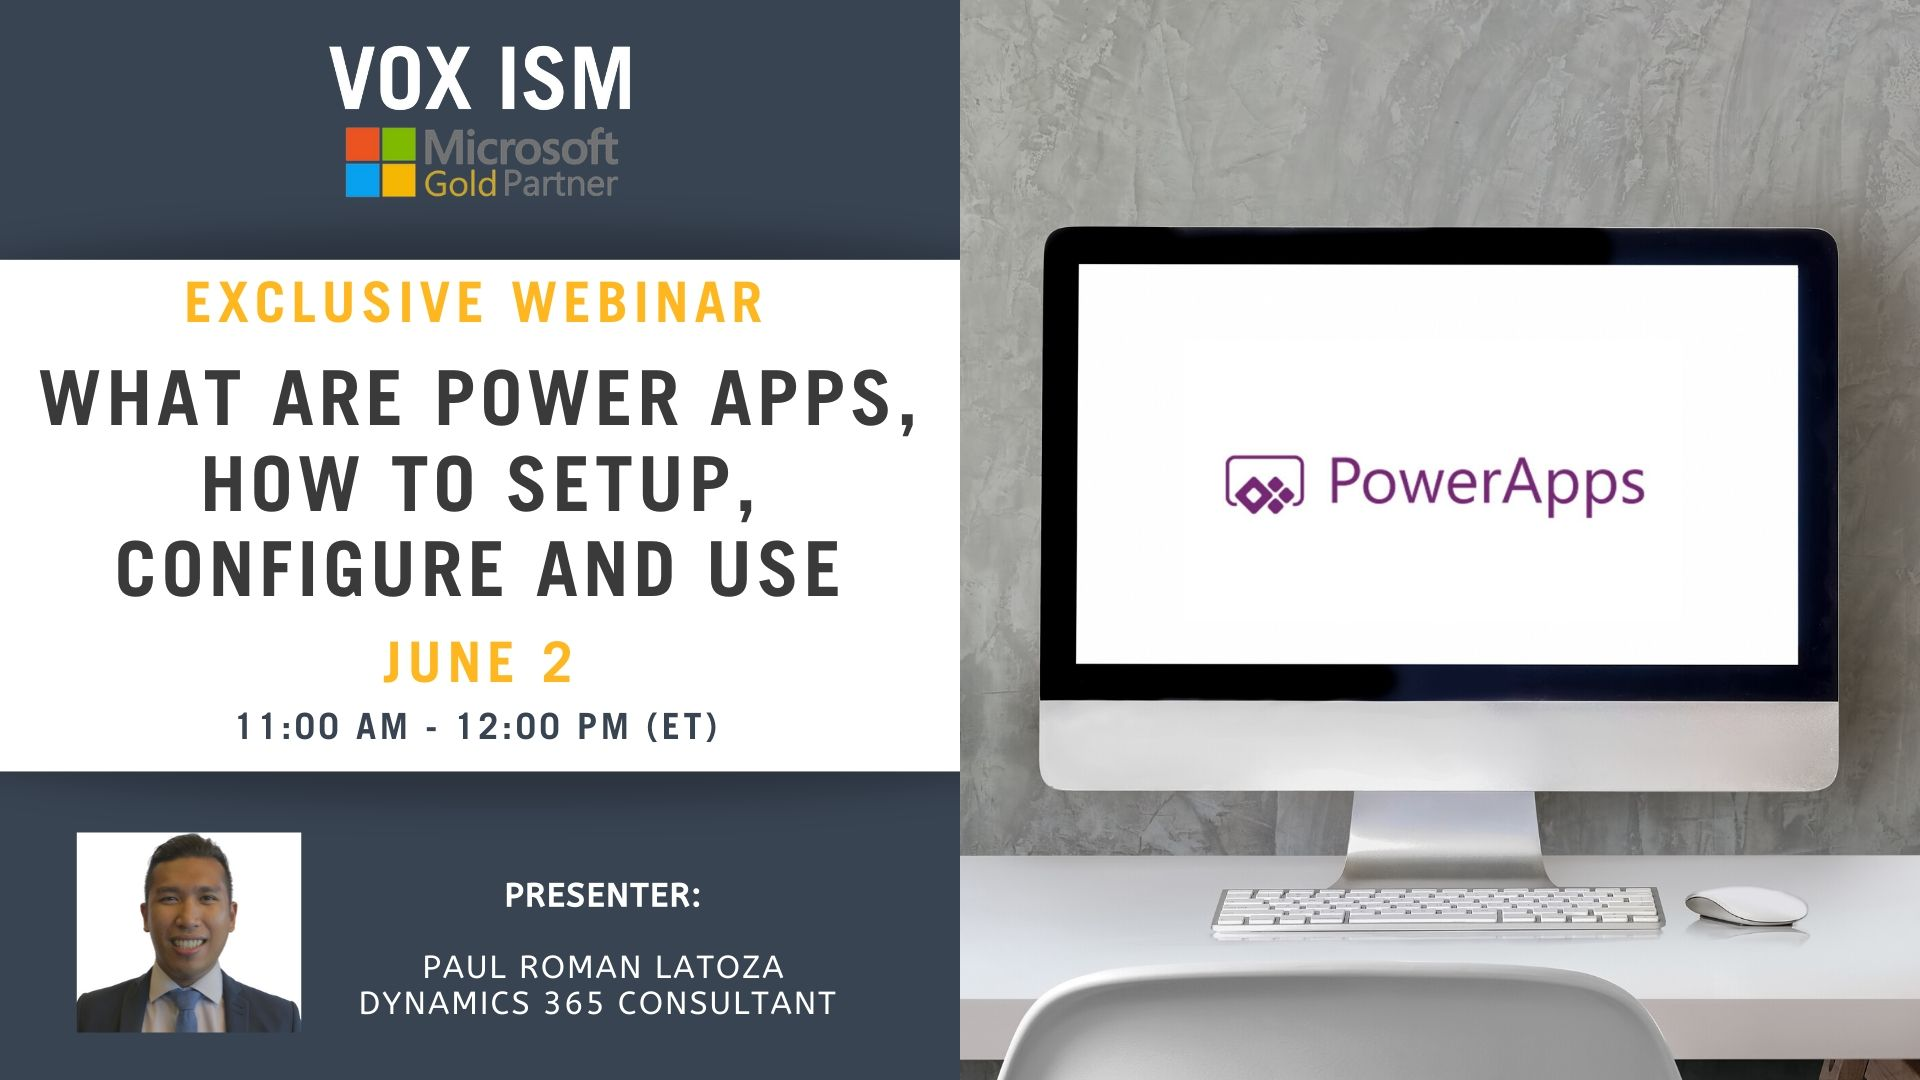 What are Power Apps, how to setup, configure and use - June 2 - Webinar VOX ISM